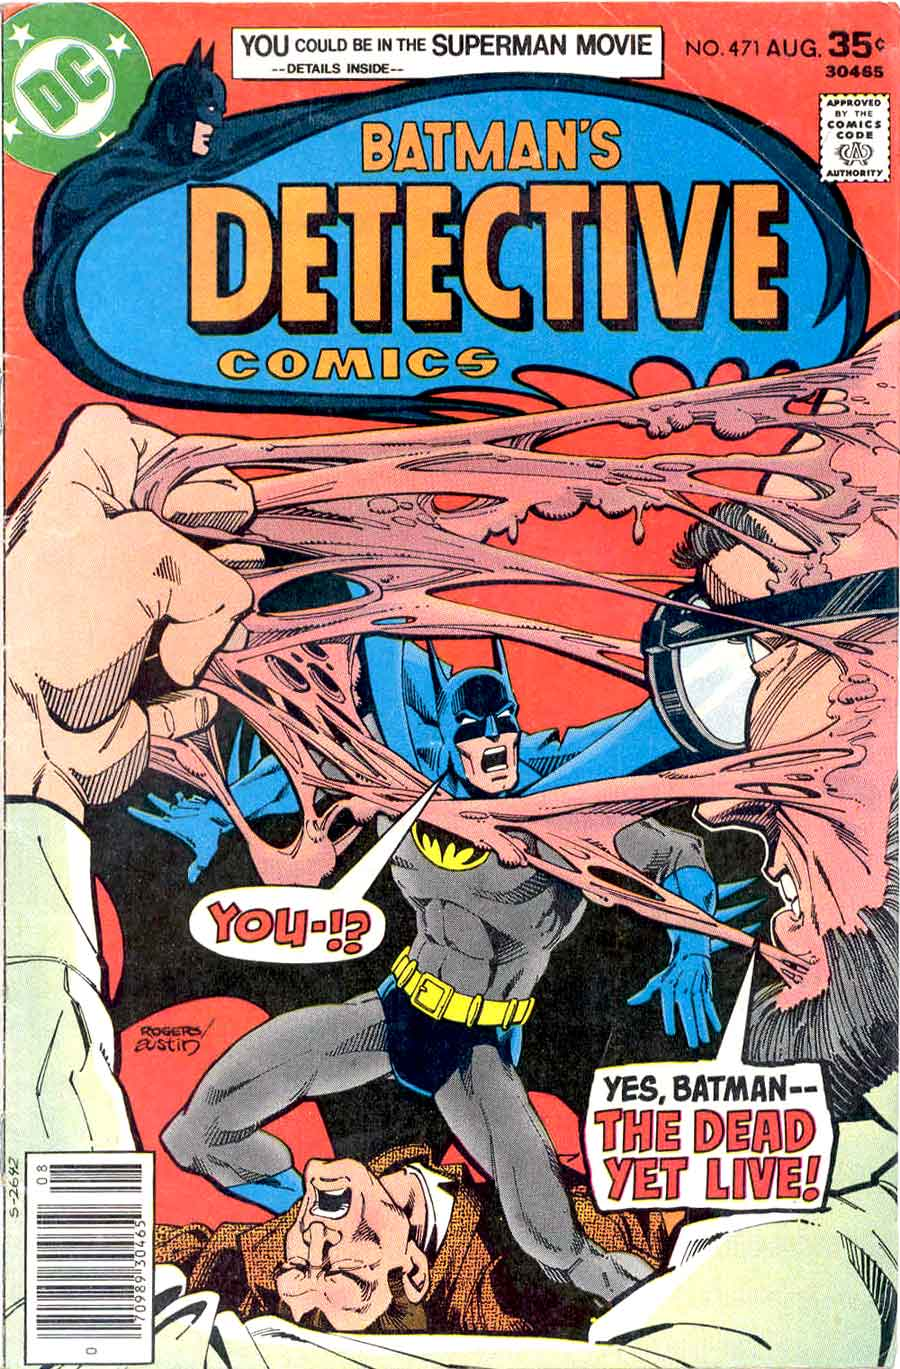 Detective Comics v1 #471 dc comic book cover art by Marshall Rogers